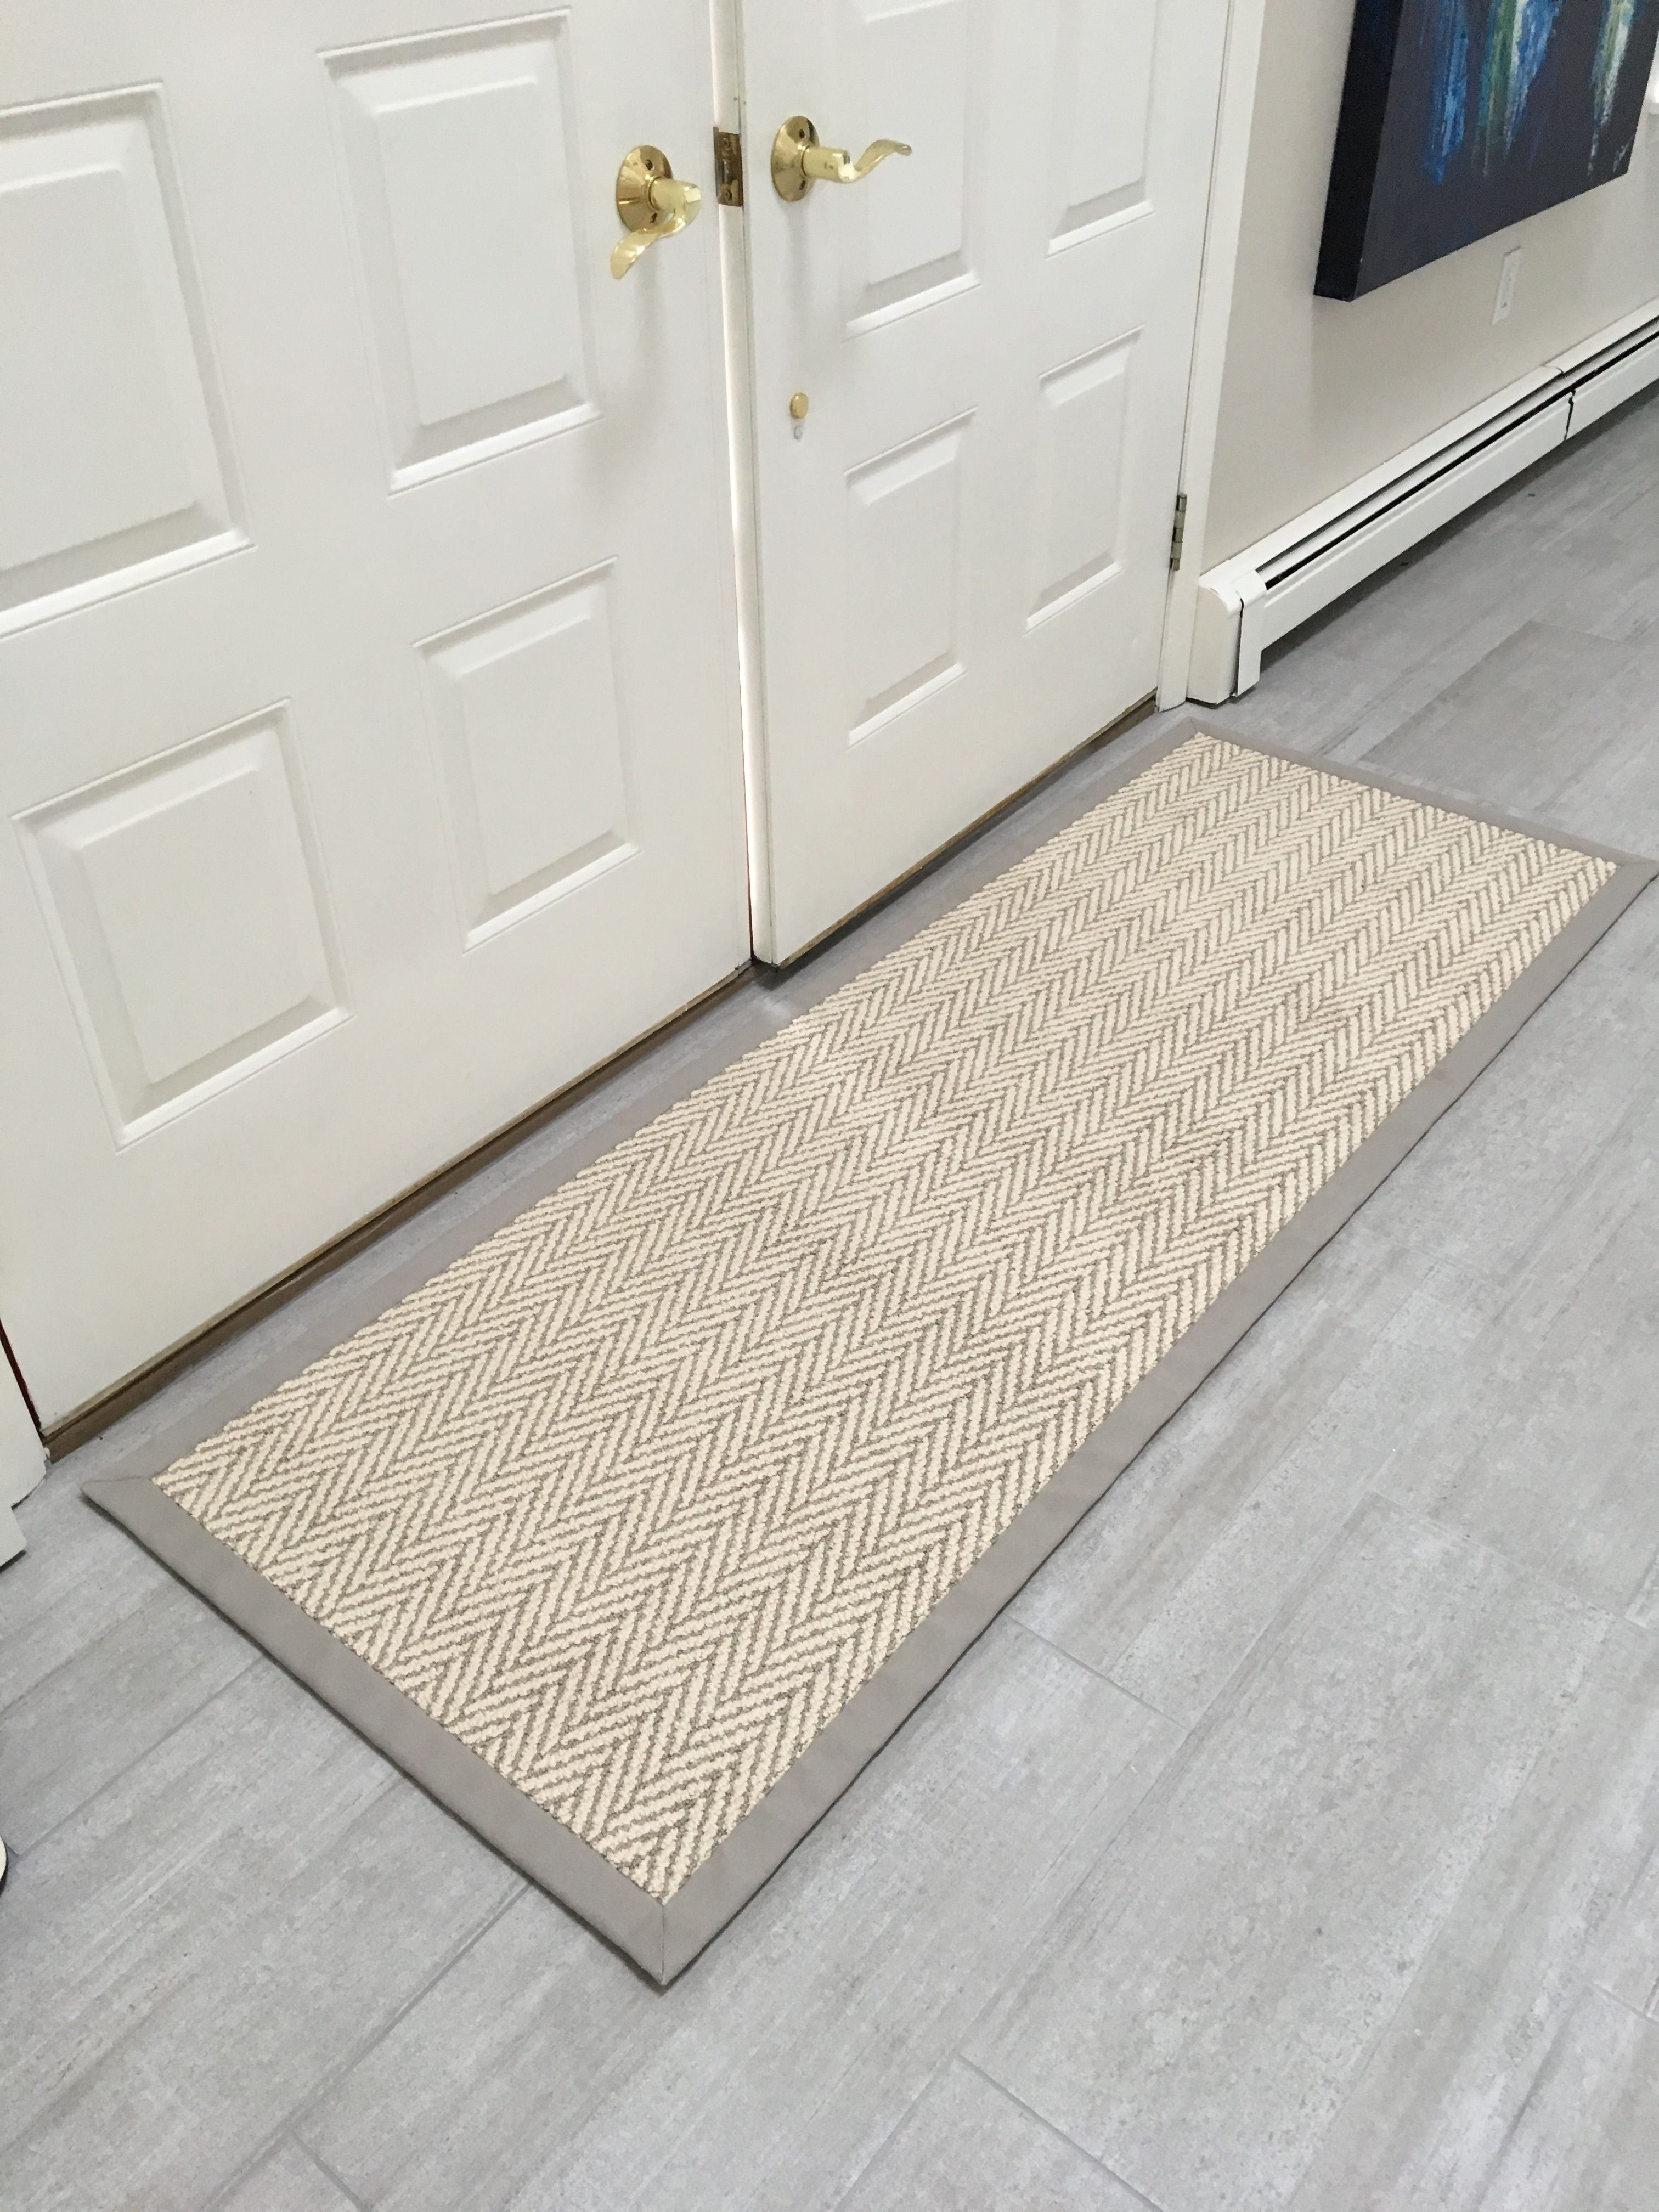 dotcom for doormat wholesaler shenzhen brush resolutions mats post retina and w indoor china step door entranceways from lobbies mat entrance h indoorchina wide x